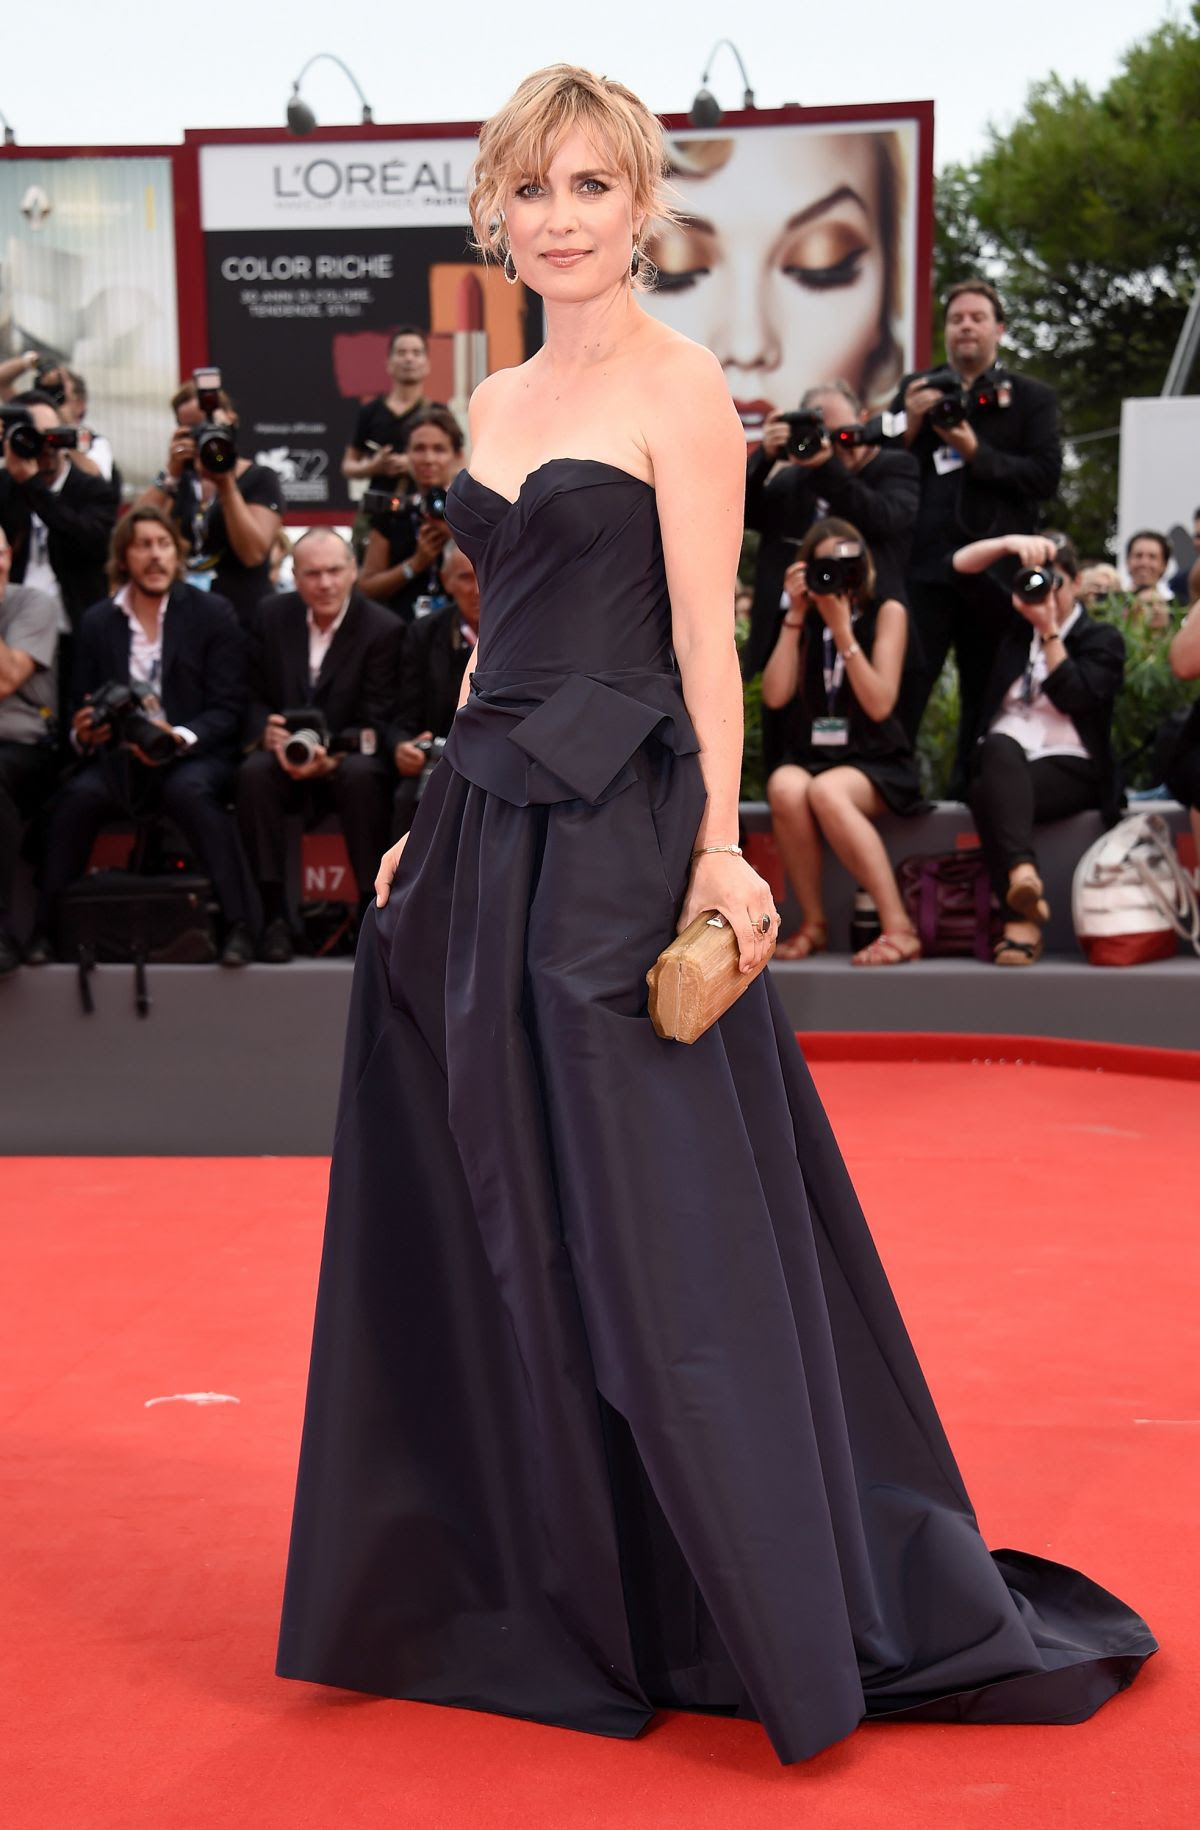 http://www.hawtcelebs.com/wp-content/uploads/2015/09/radha-mitchell-at-everest-premiere-and-72nd-venice-film-festival-opening-ceremony_8.jpg